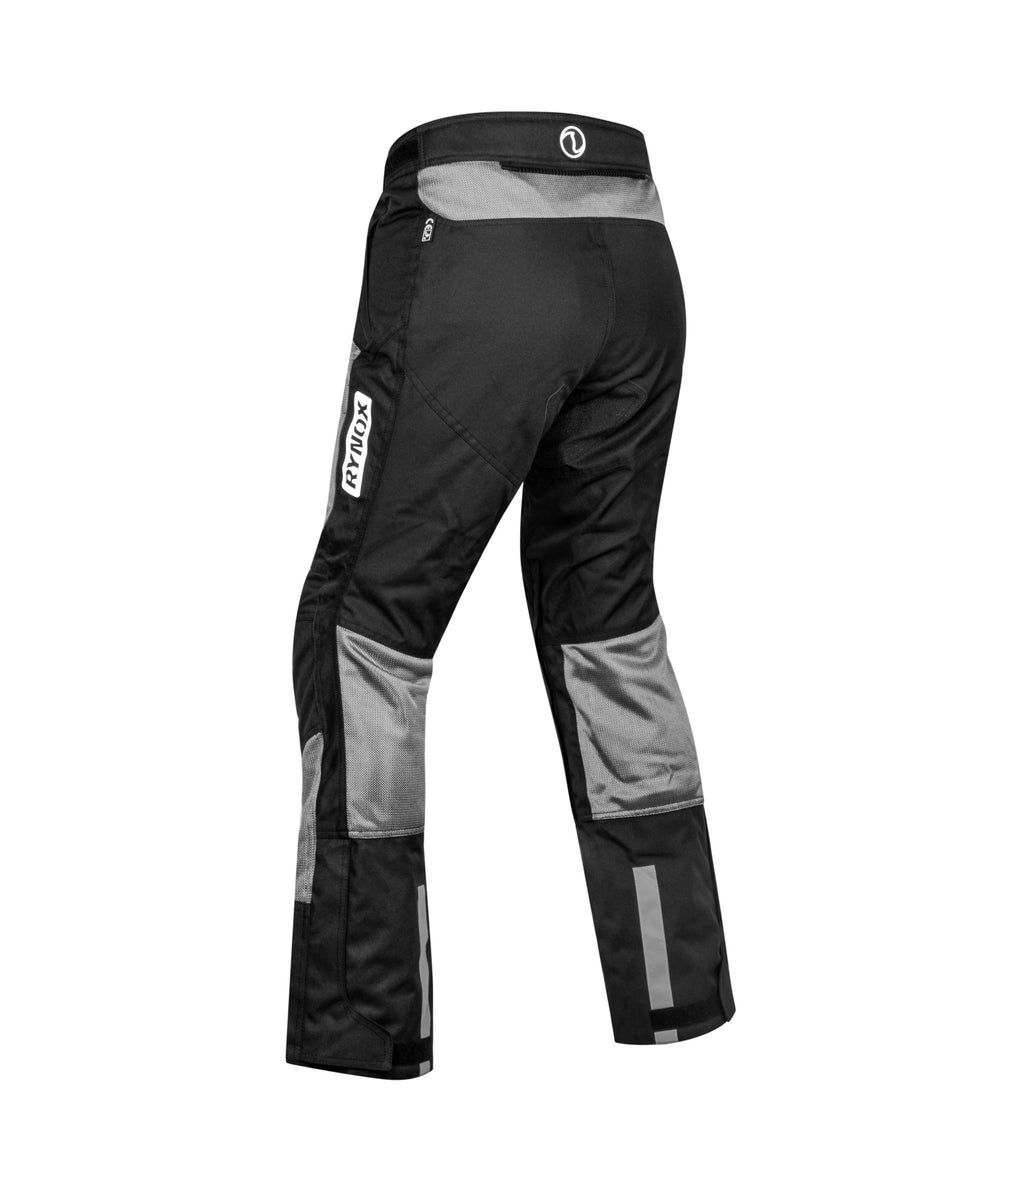 Rynox Storm Evo Pants (Black Grey)